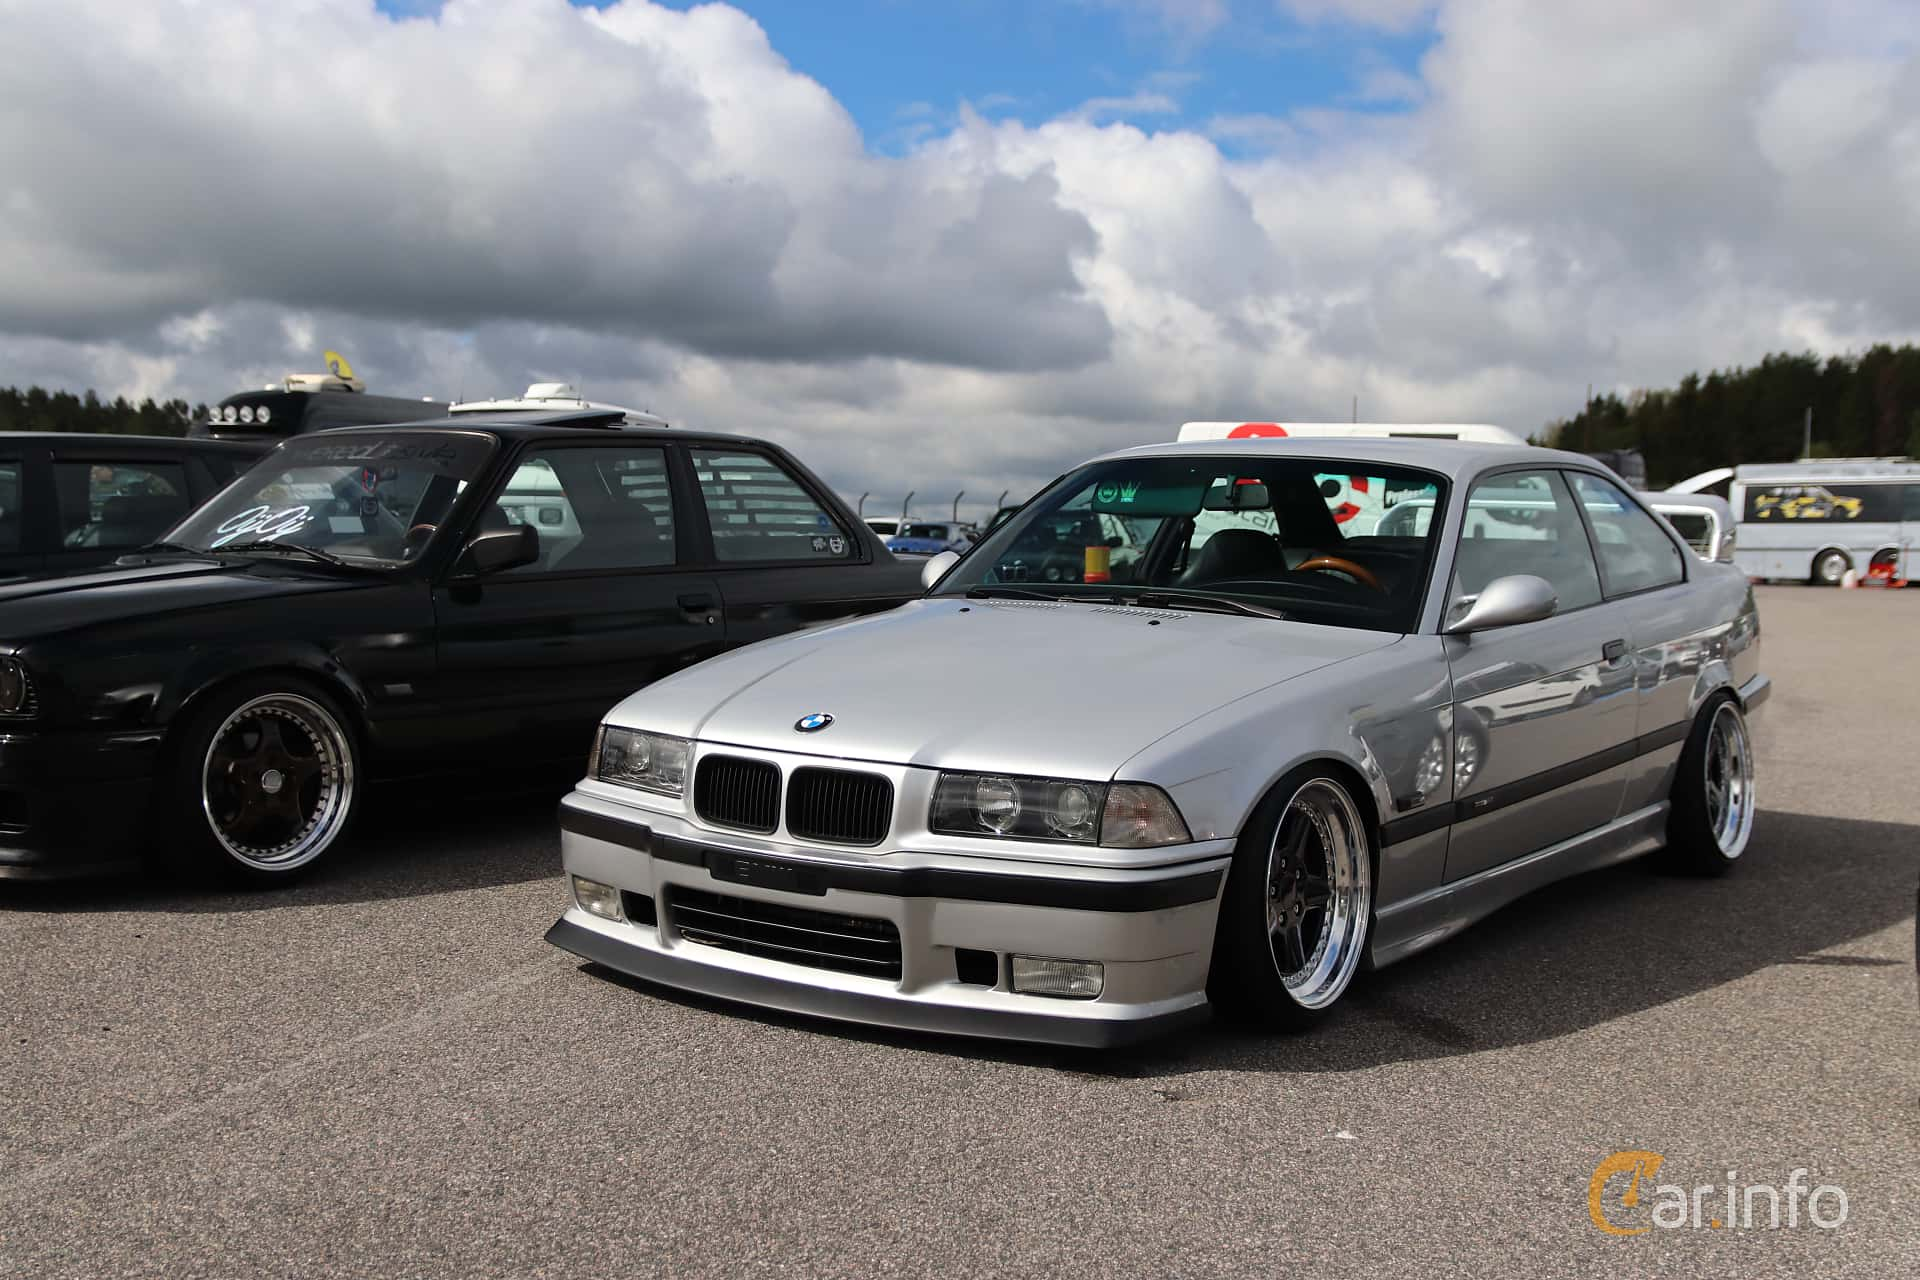 3 images of bmw 325i coupe automatic 192hp 1992 by jarbo bmw 325i coupe automatic 192hp 1992